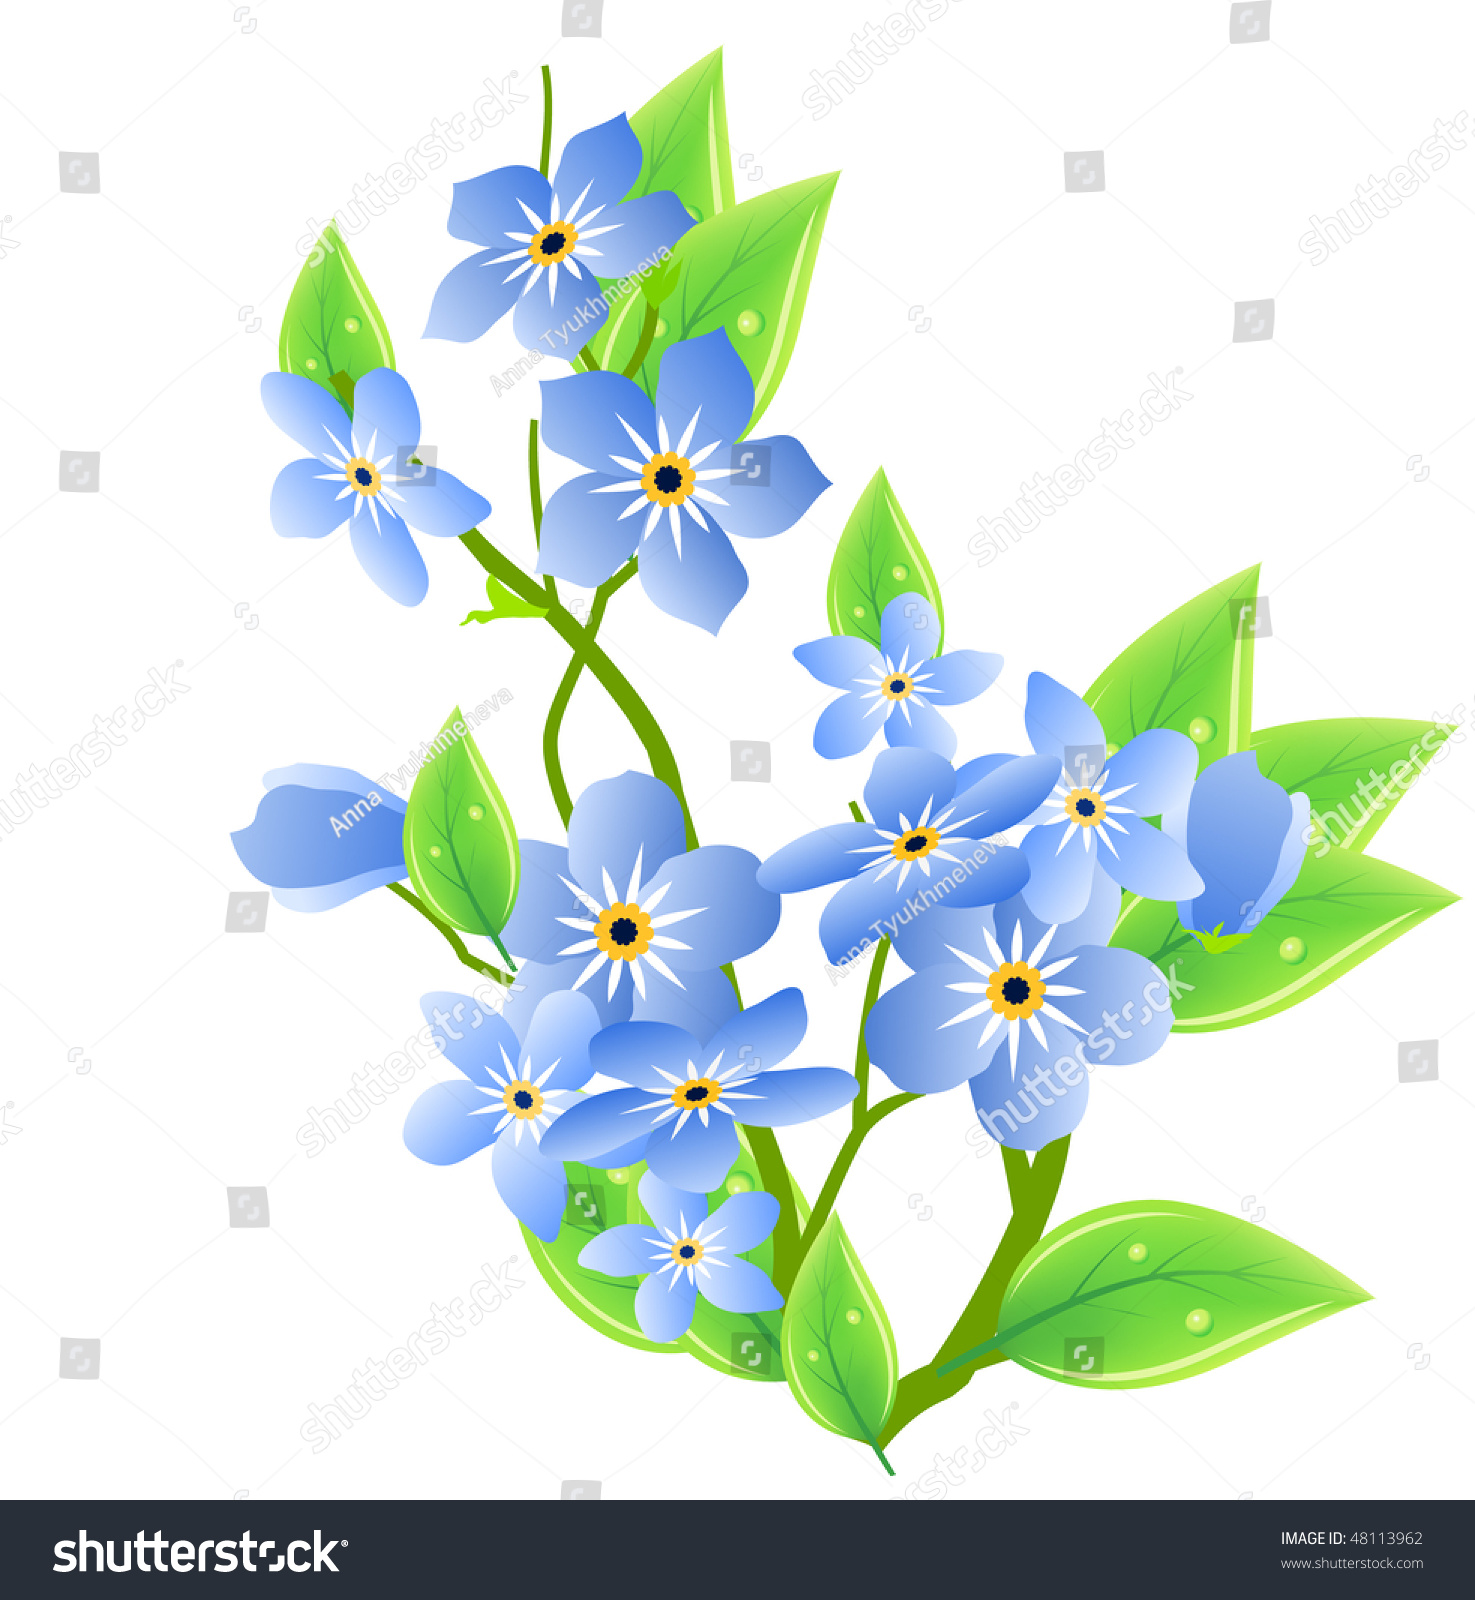 clip art forget me not flower - photo #24